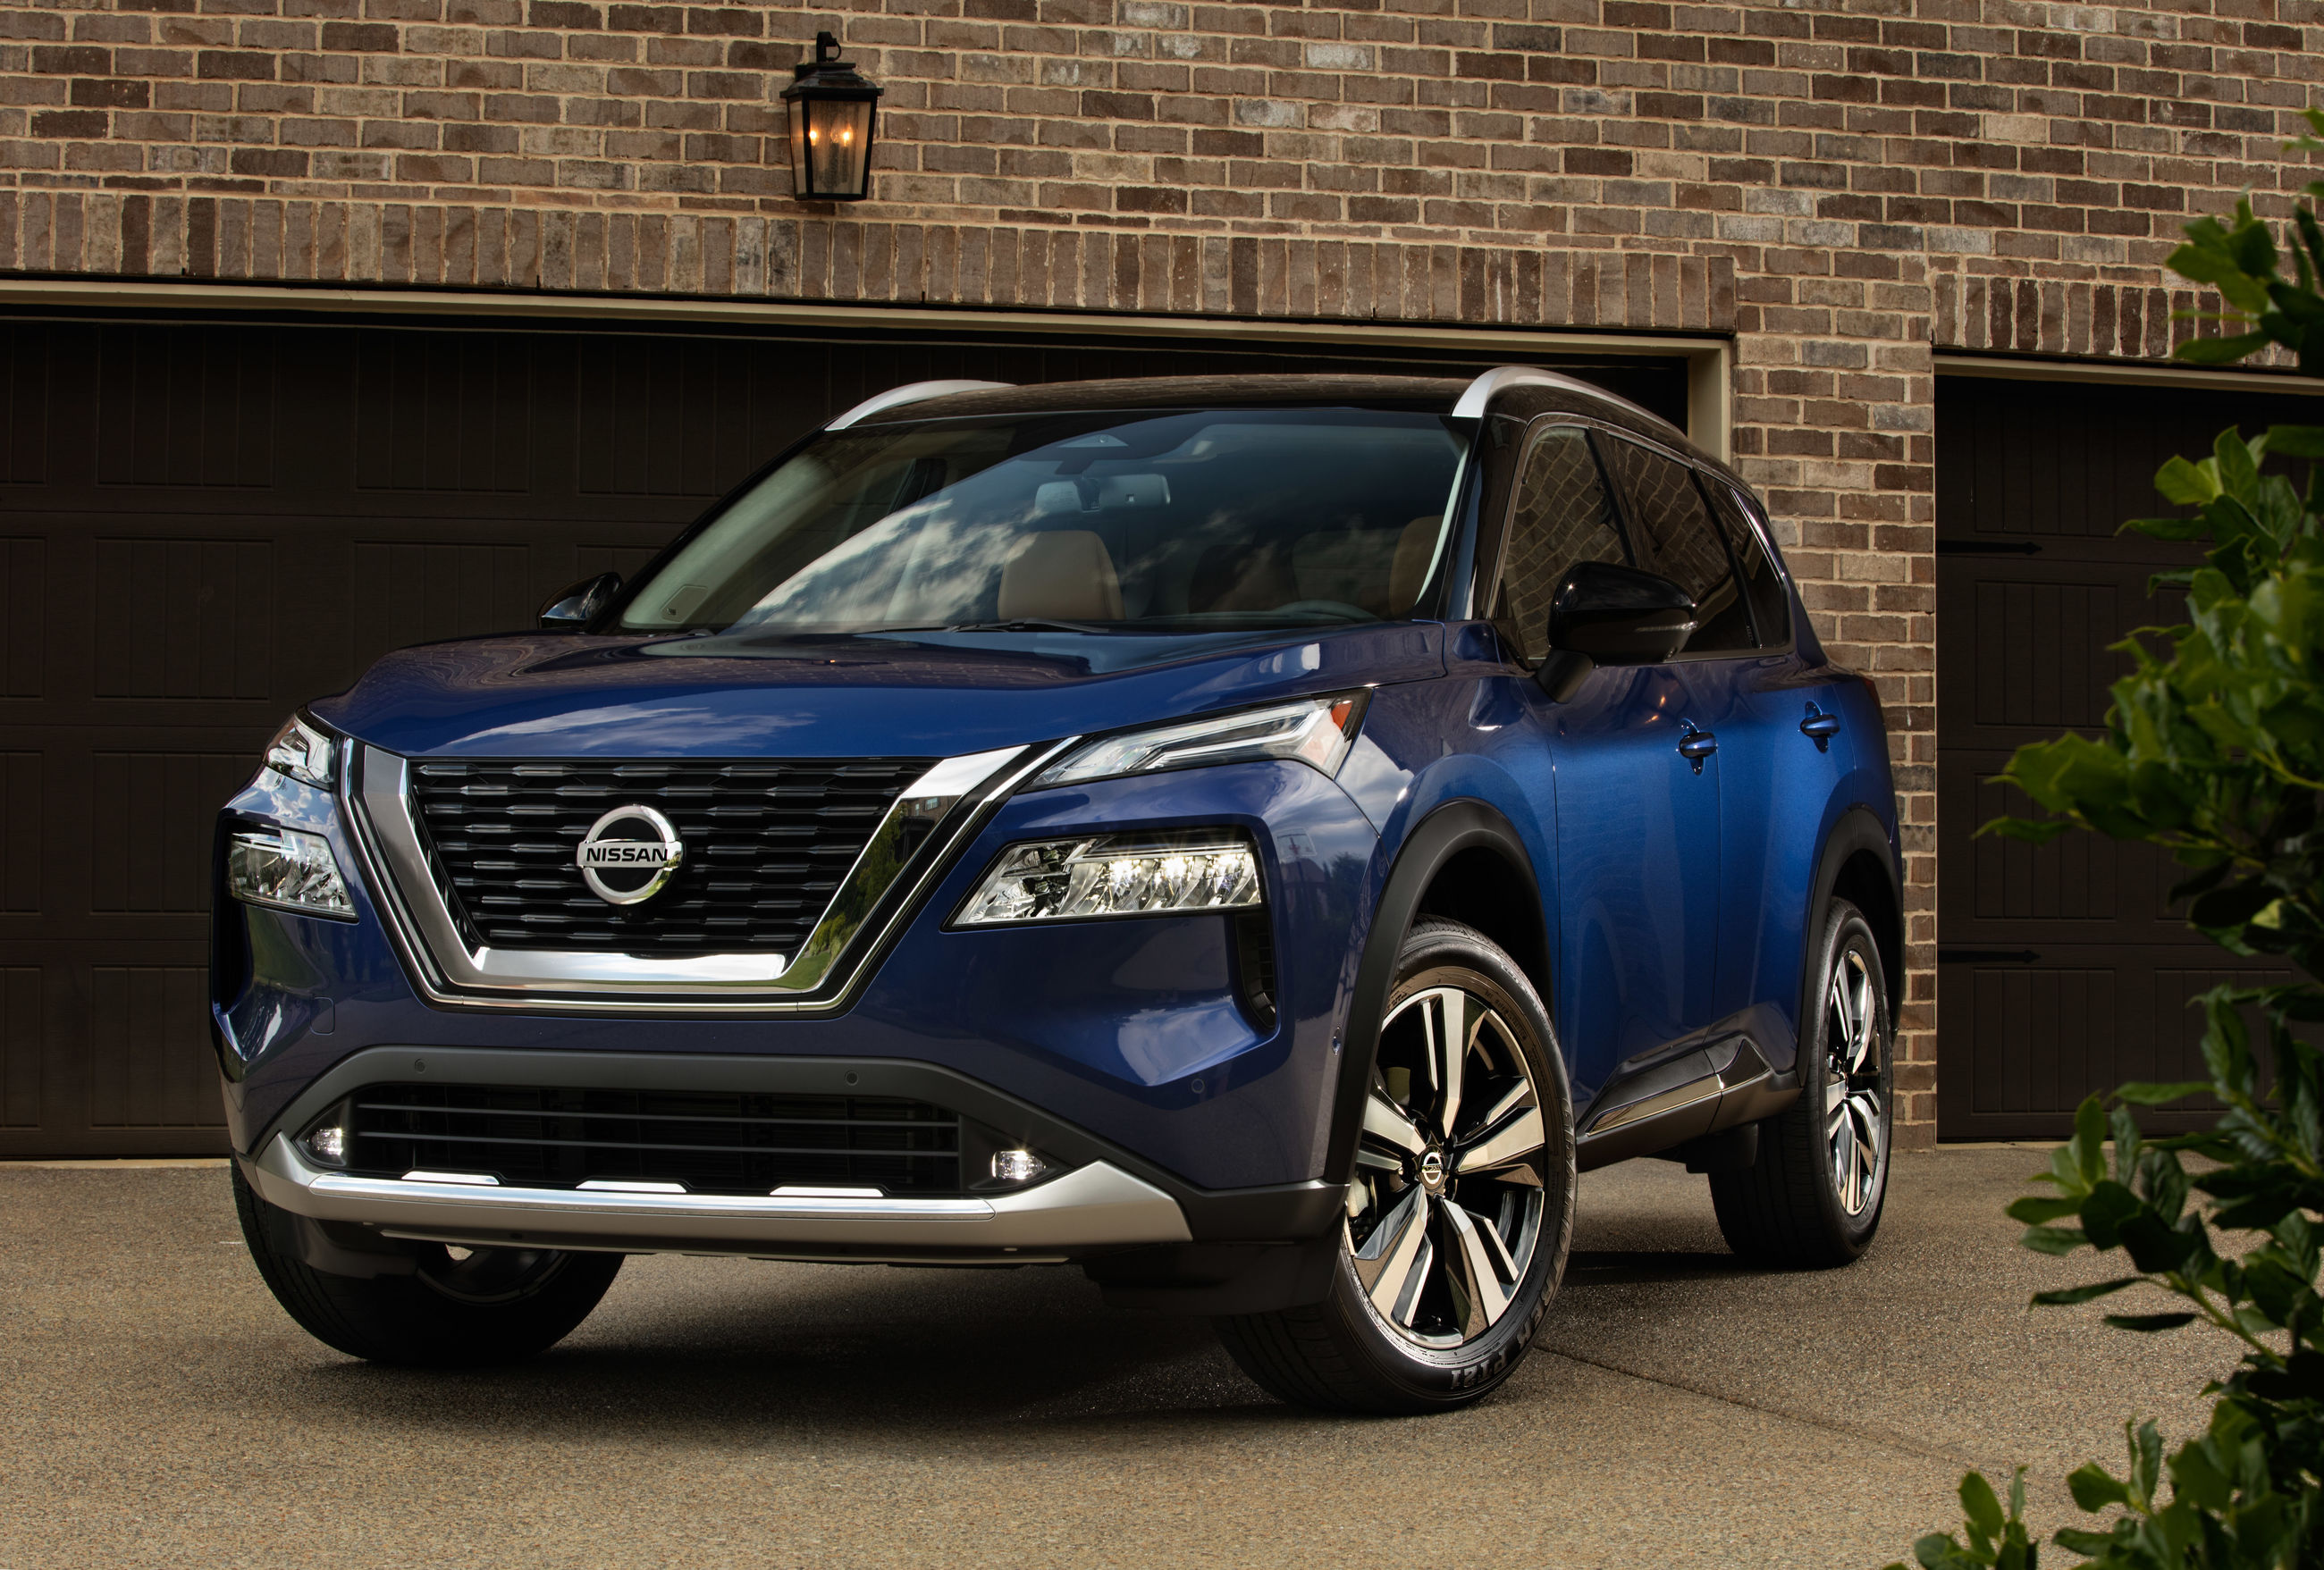 44 Best Review Nissan Rogue 2020 Canada Pricing With Nissan Rogue 2020 Canada Car Review Car Review